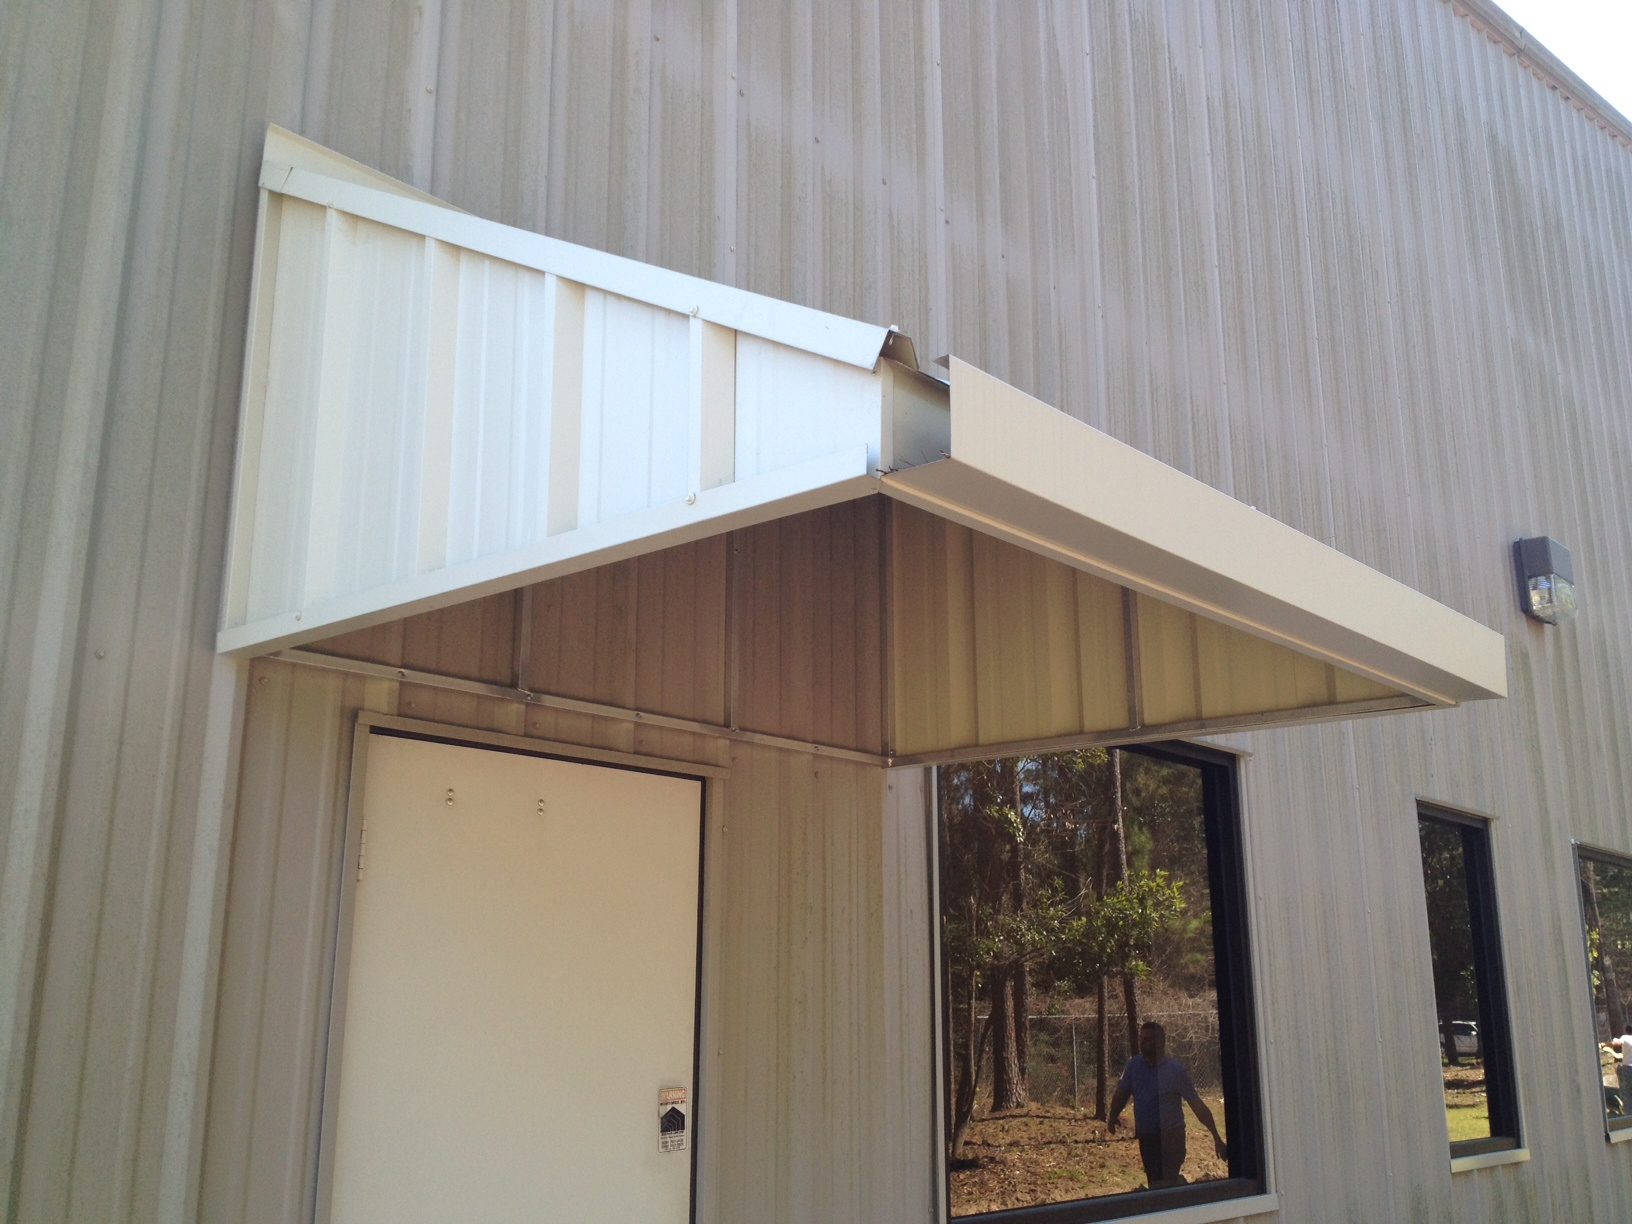 American Construction Of Texas R Panel Awning W Gutter